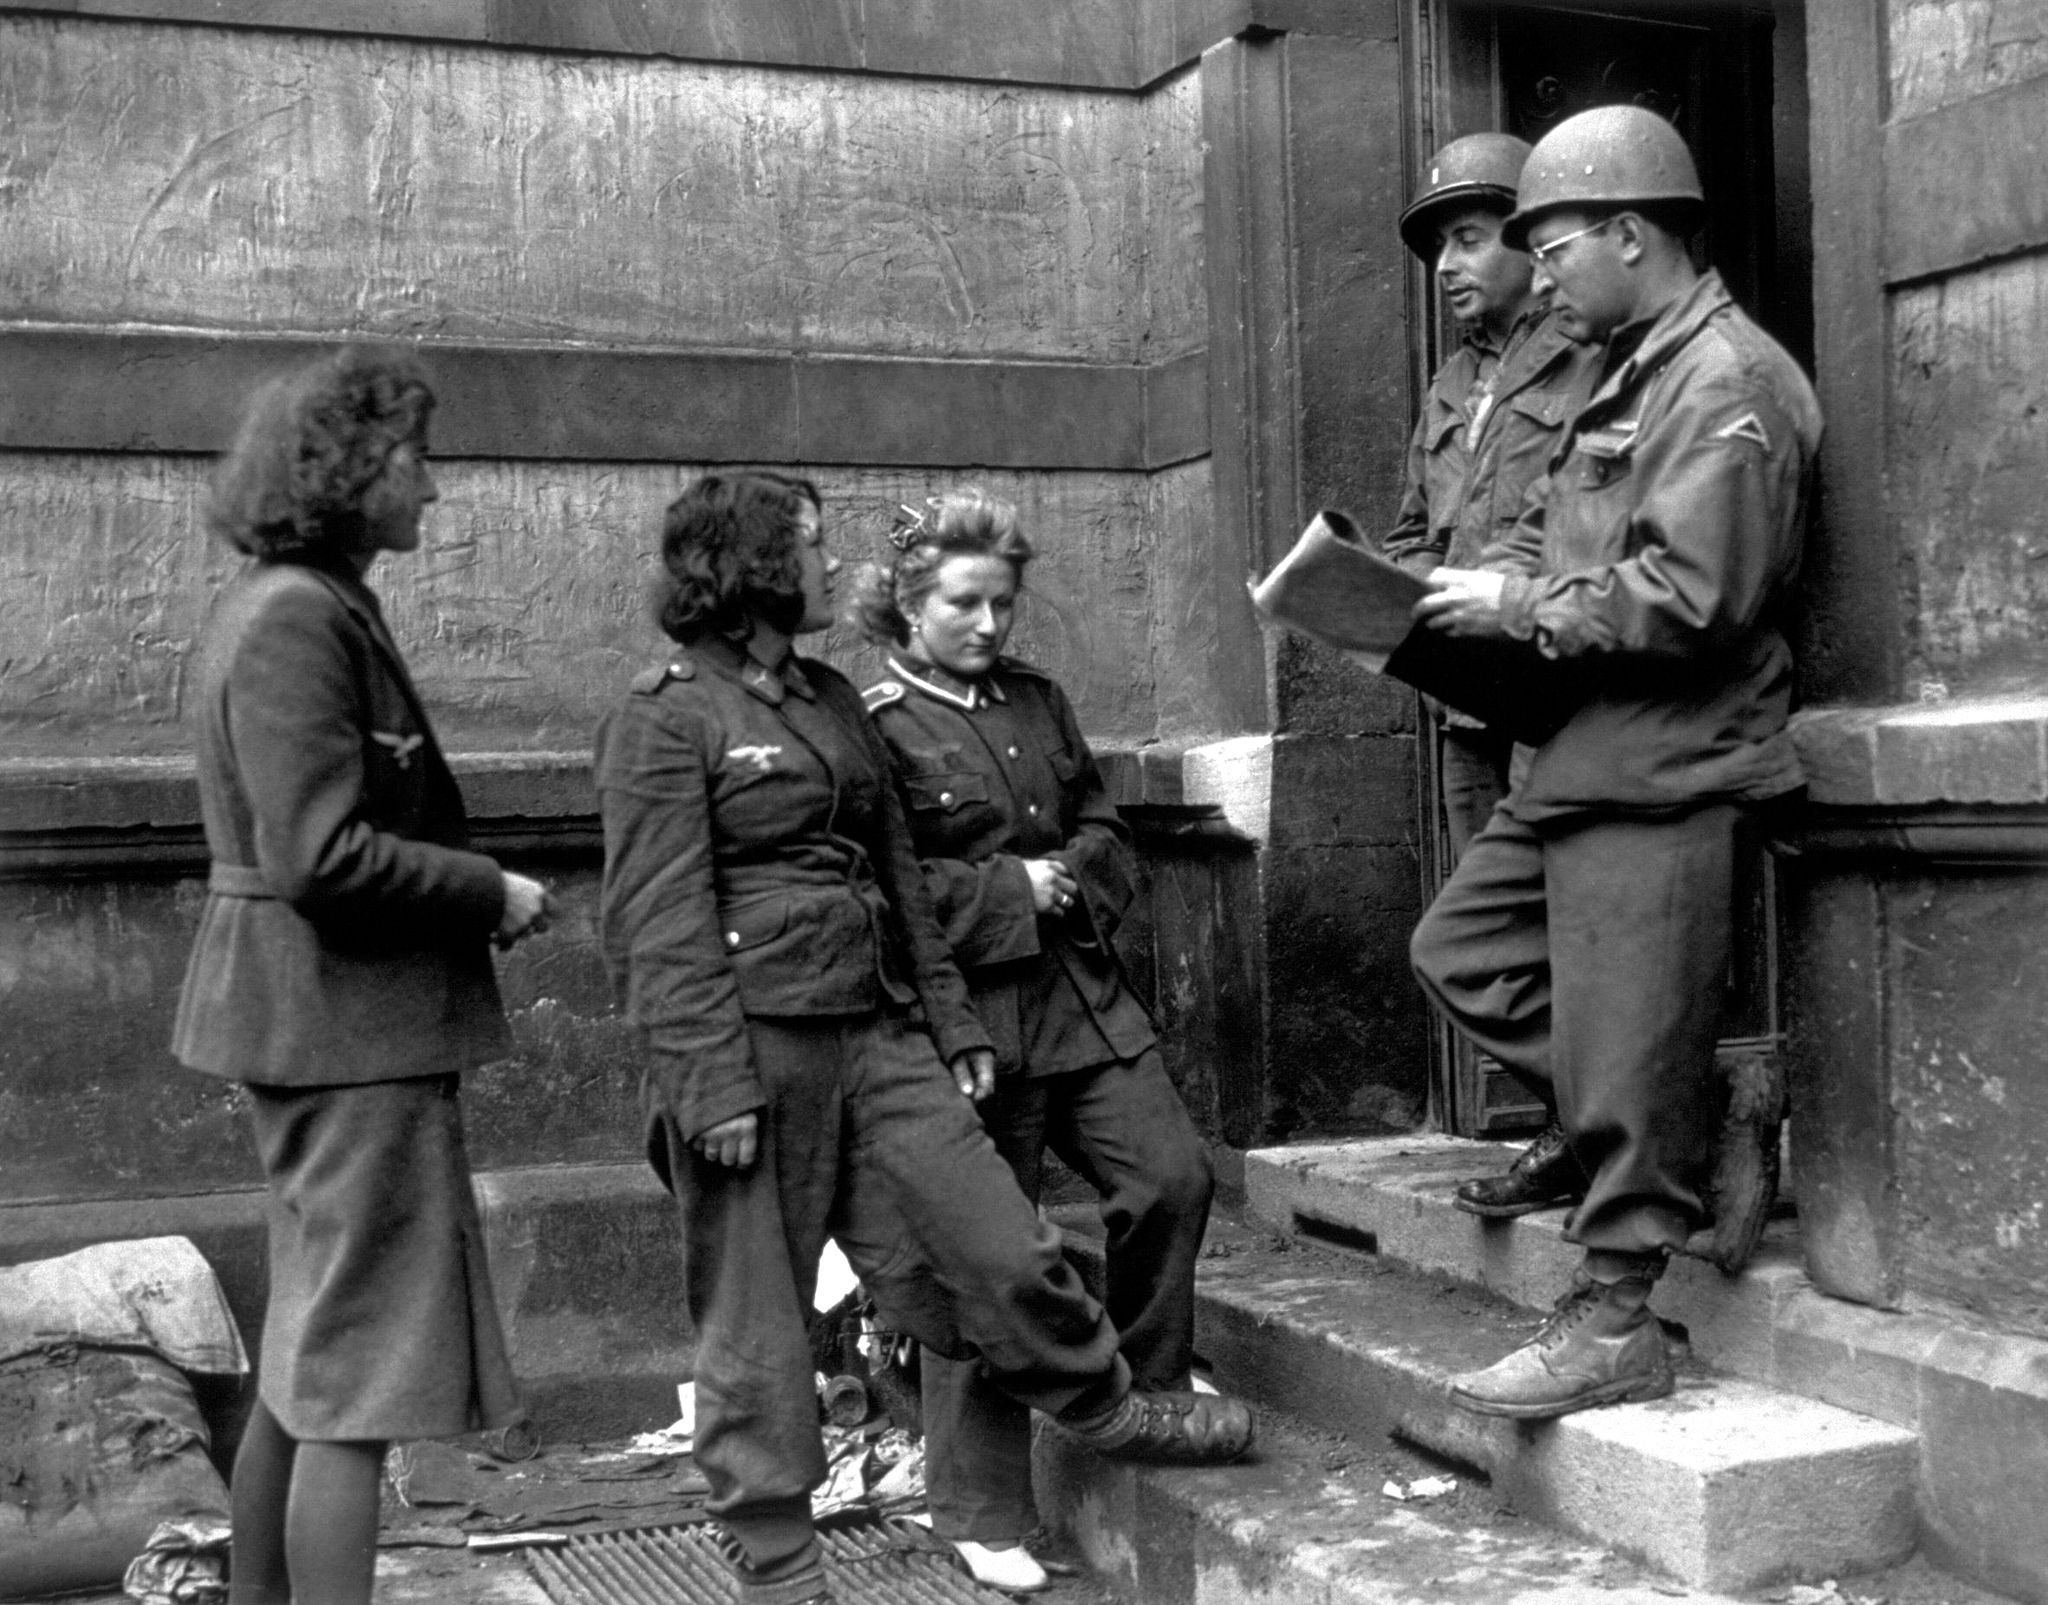 Us Officers Speak With Women In German Uniforms Pows